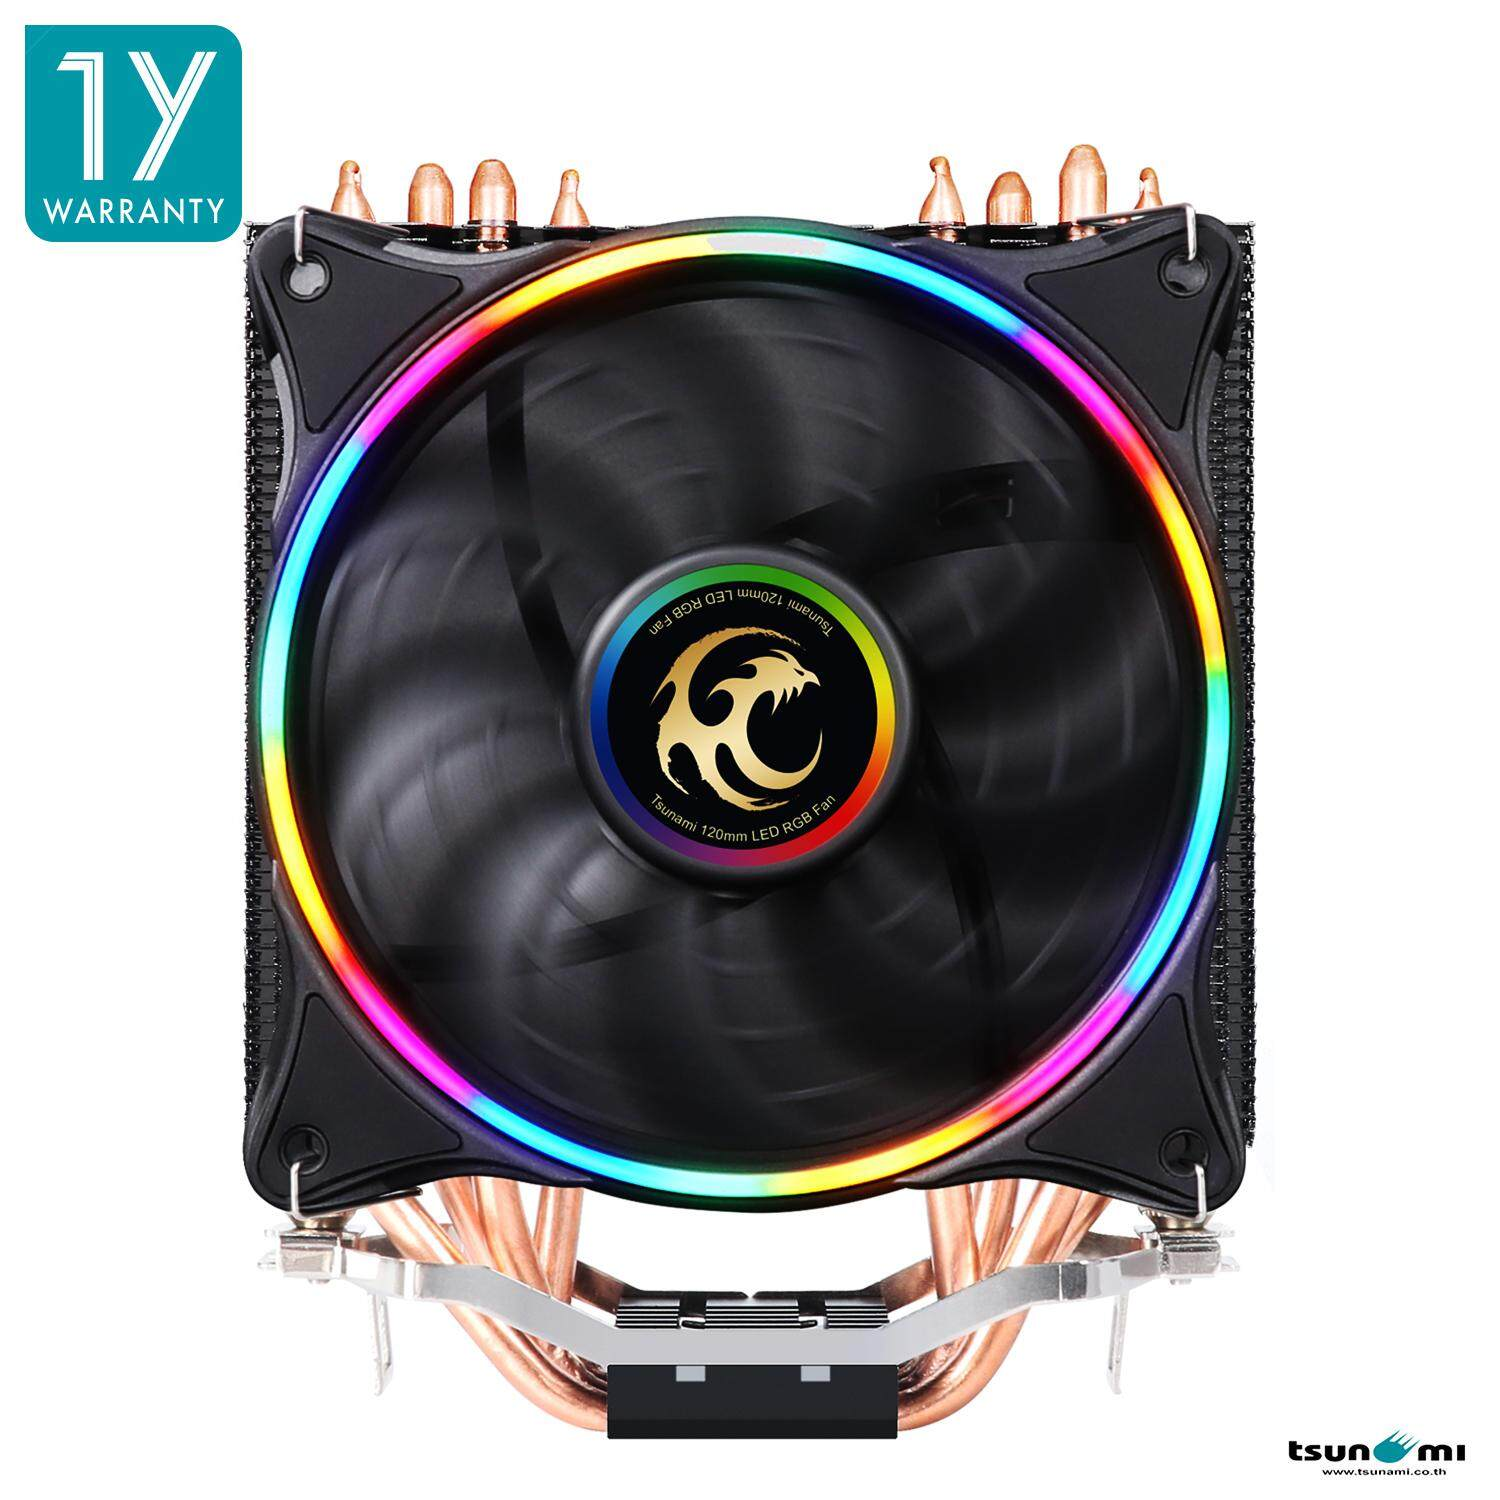 Tsunami Super Storm Rgb 130w Cpu Cooler Tss-2000 ( 4 Heat Pipes + 12 Cm Neon Fan) (p.w.m Function)(intel/amd Compatible) By Fun Republic Co.,ltd..